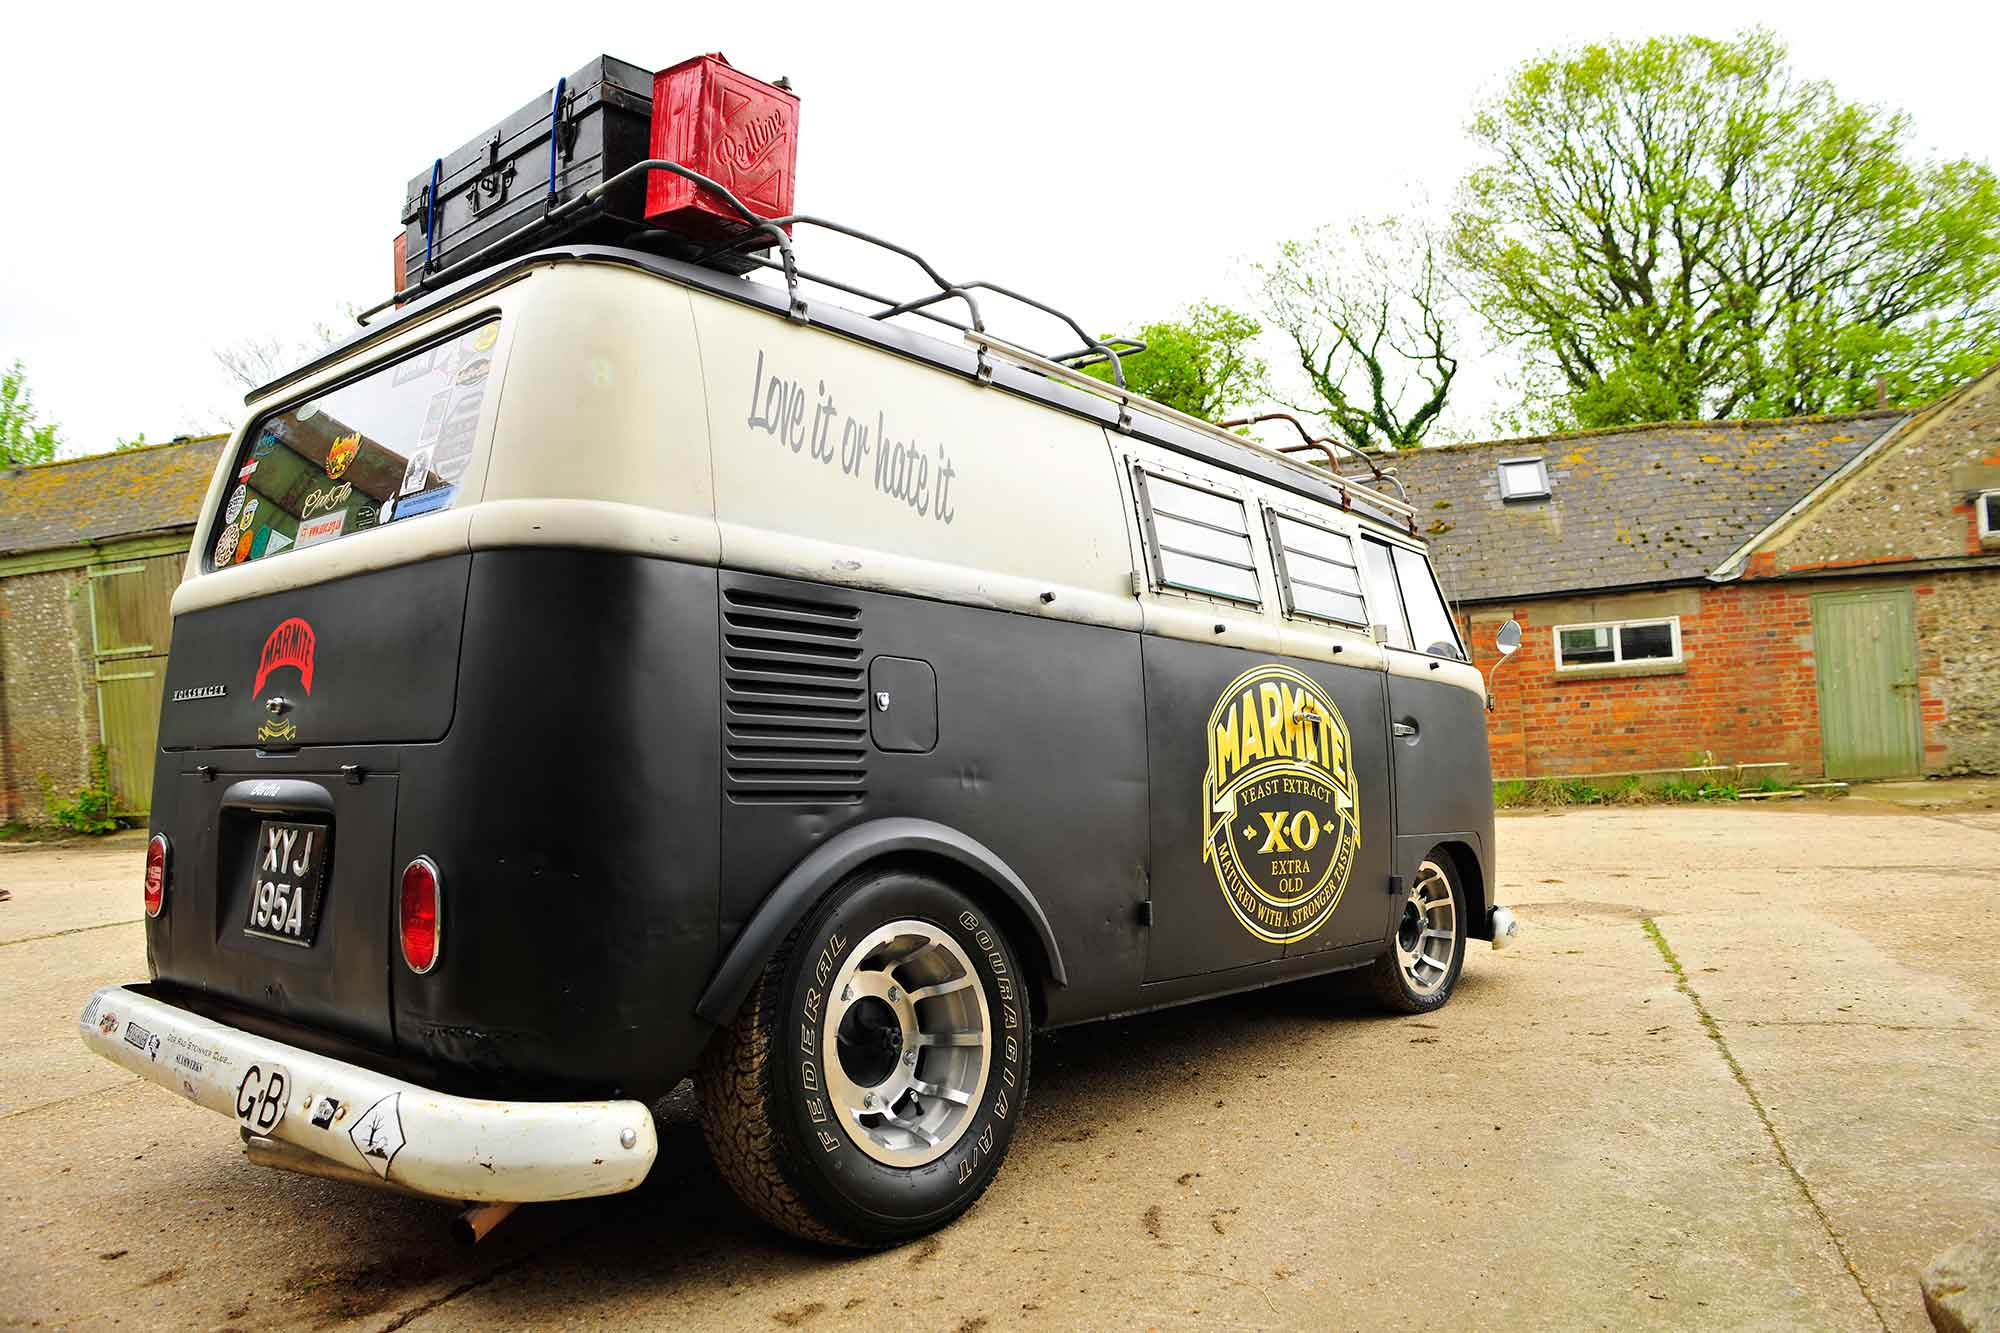 Marmite Splitty